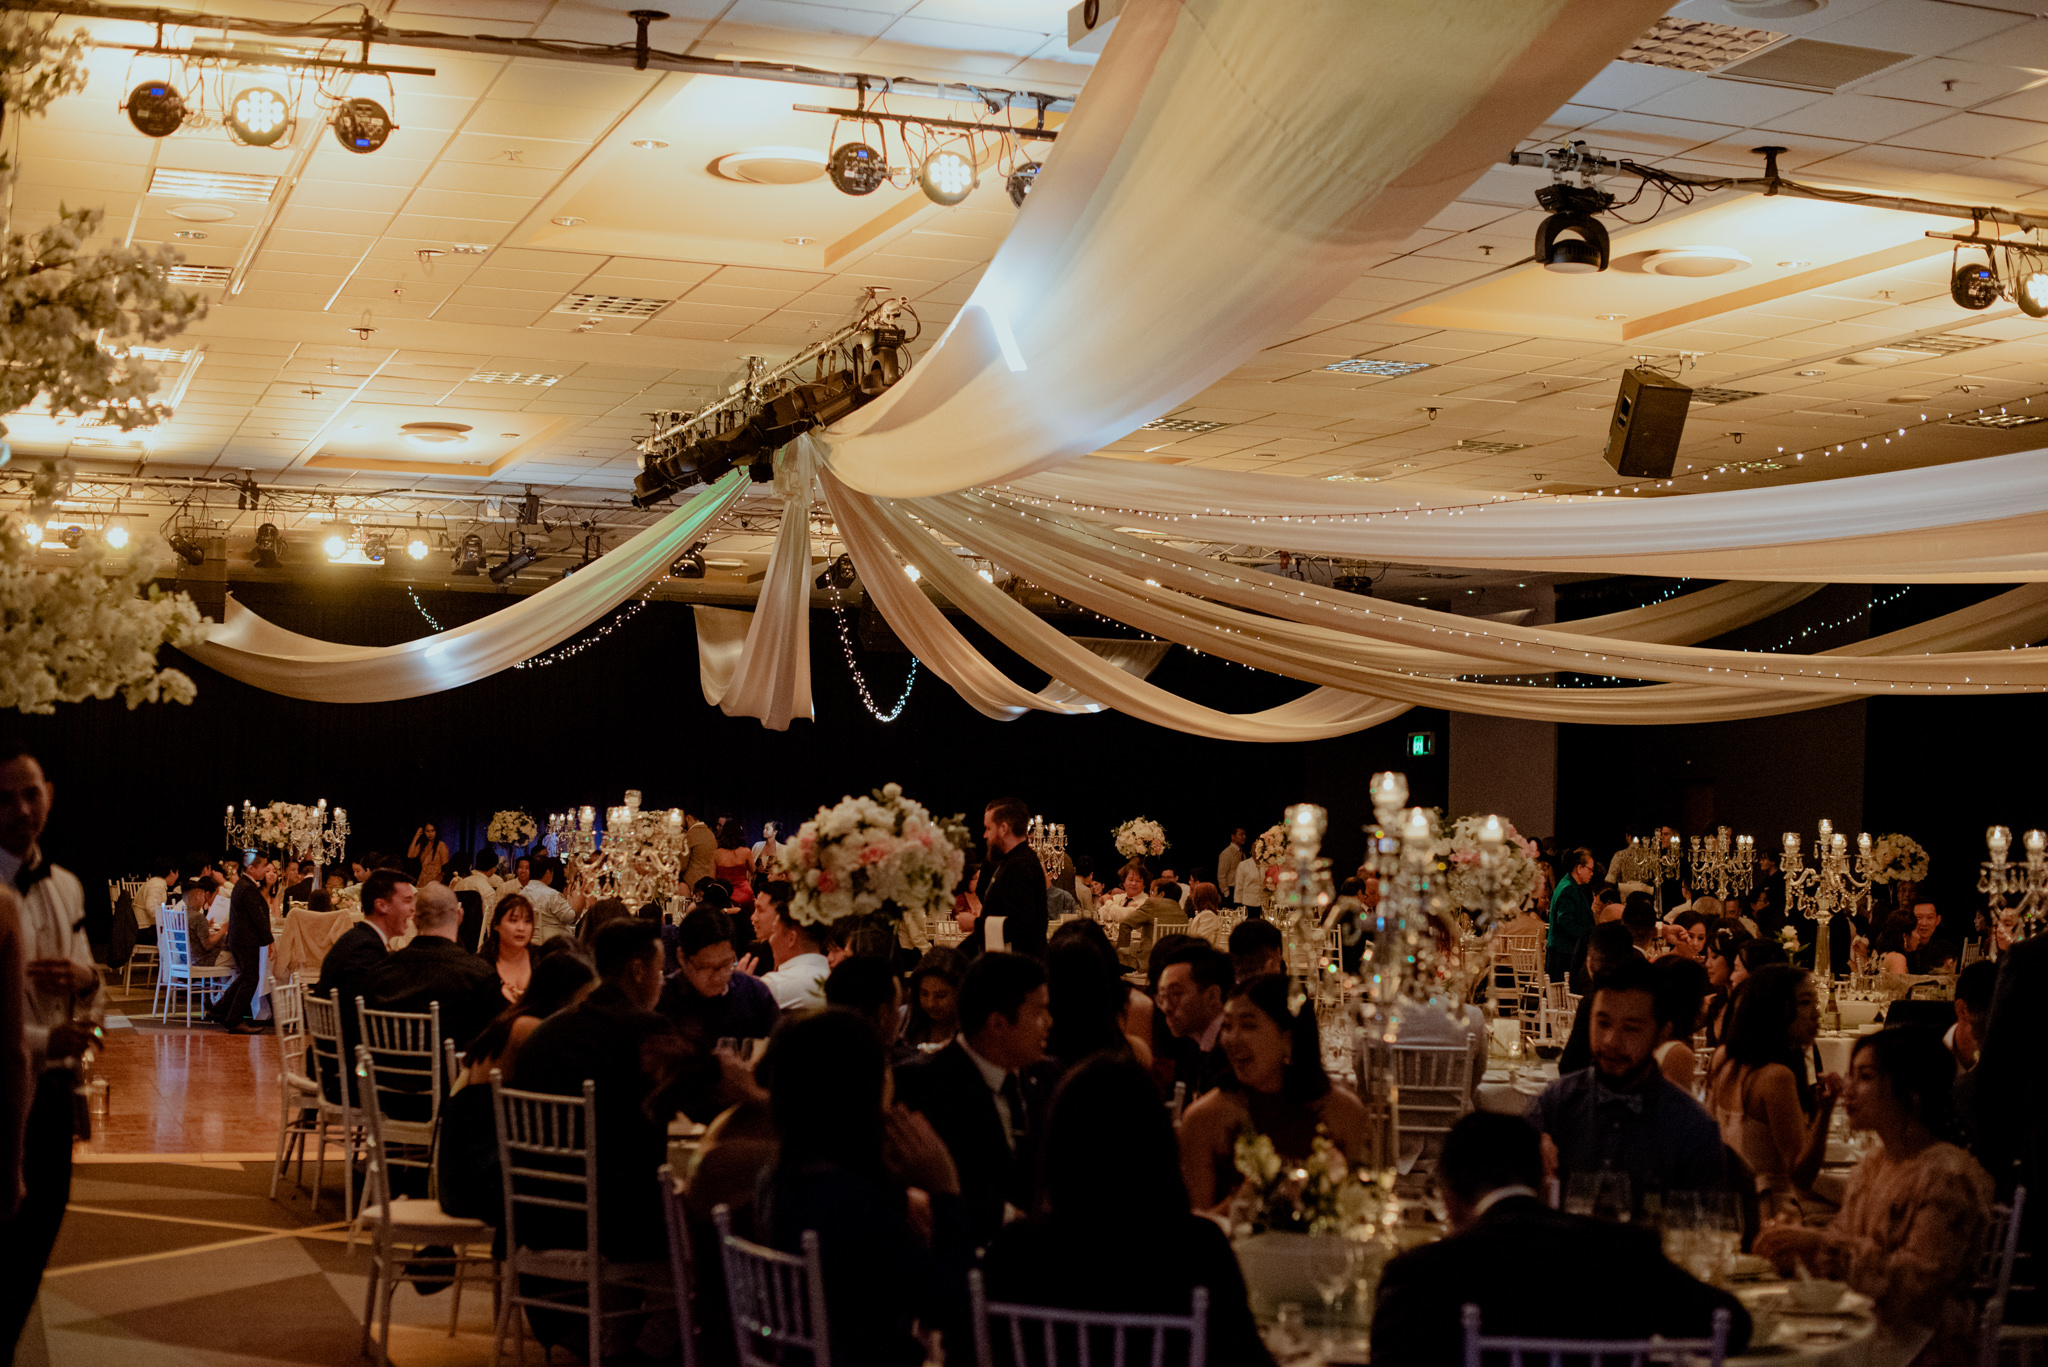 A large banquet hall filled with wedding guests at a convention centre